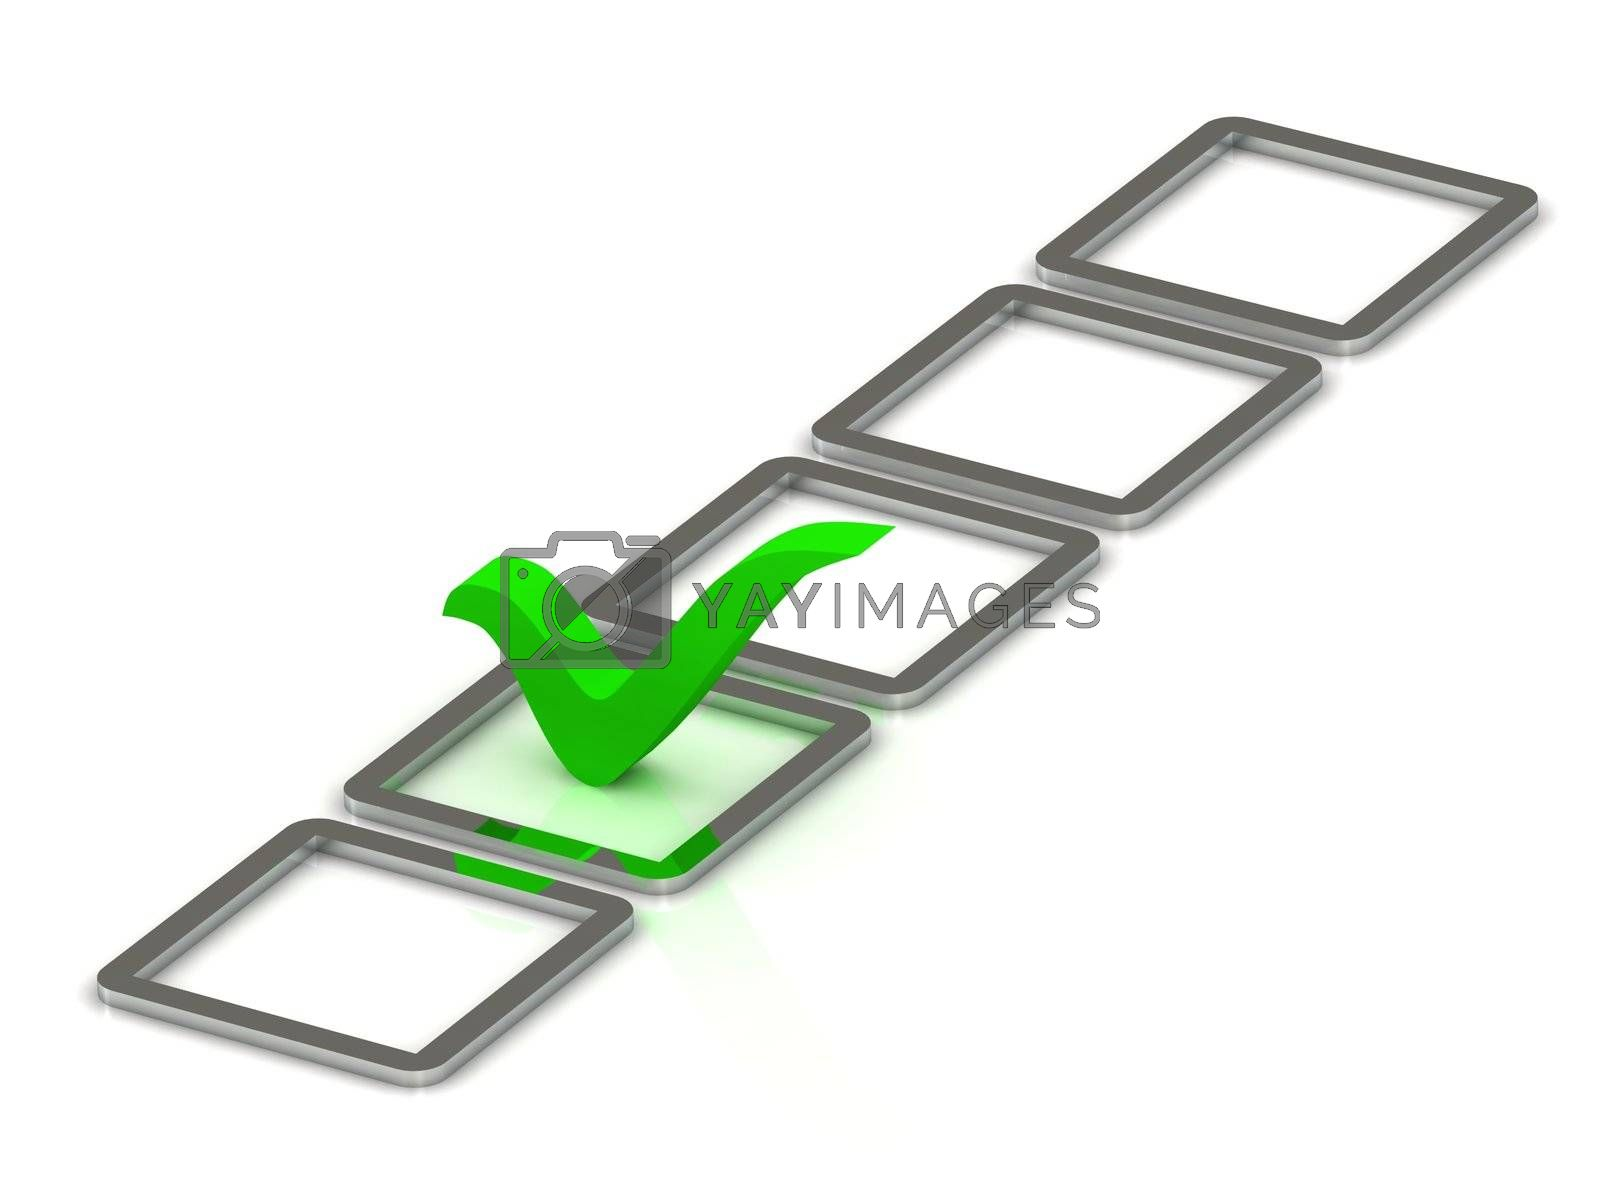 3d illustration of green check mark and 5 silver box over white background